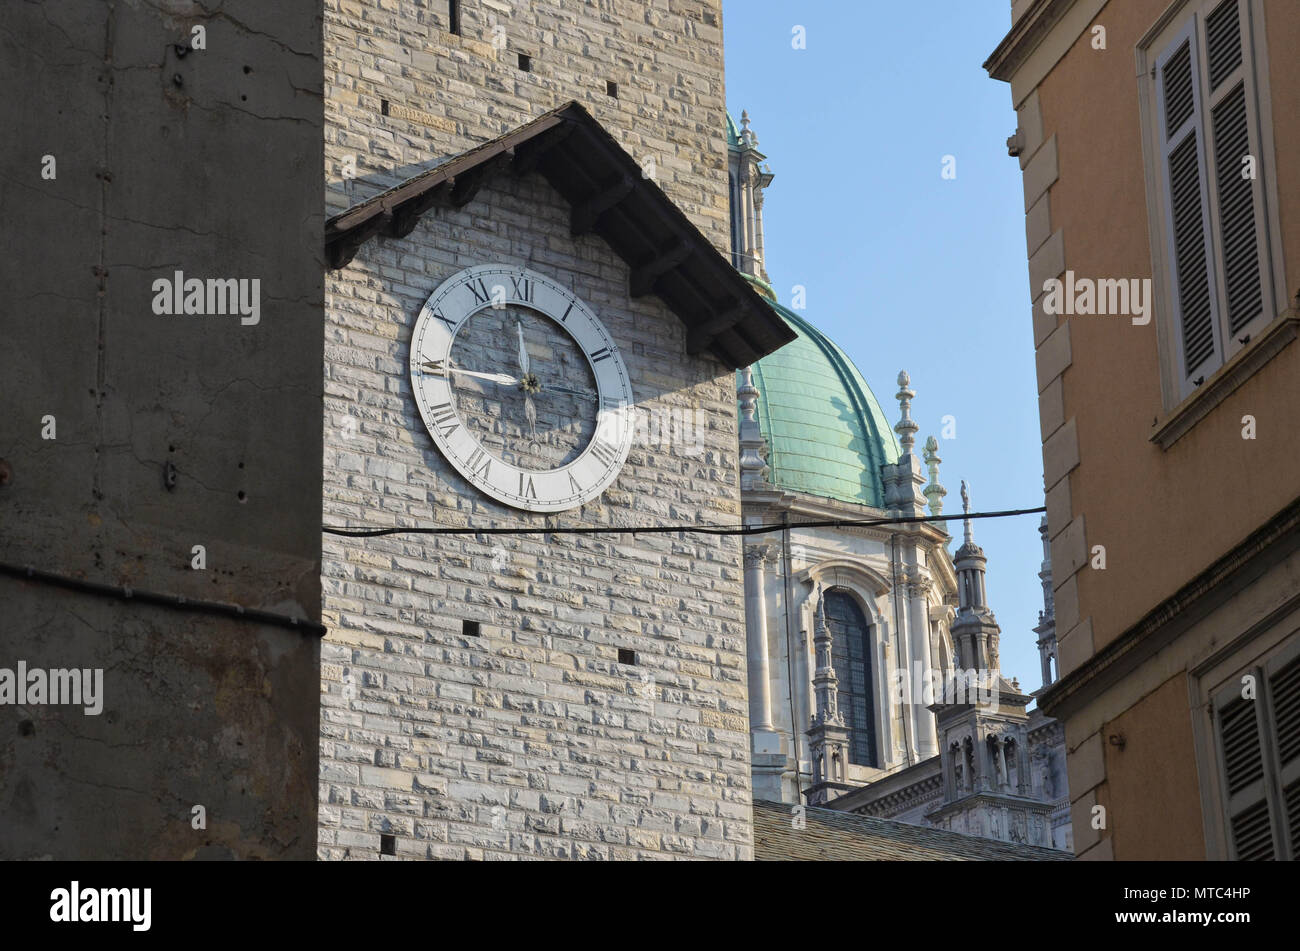 Clock tower in front of Como Cathedral (Cattedrale di Santa Maria Assunta; Duomo di Como), the city of Como, Lake Como, Lombardy, Italy, January 2018 - Stock Image